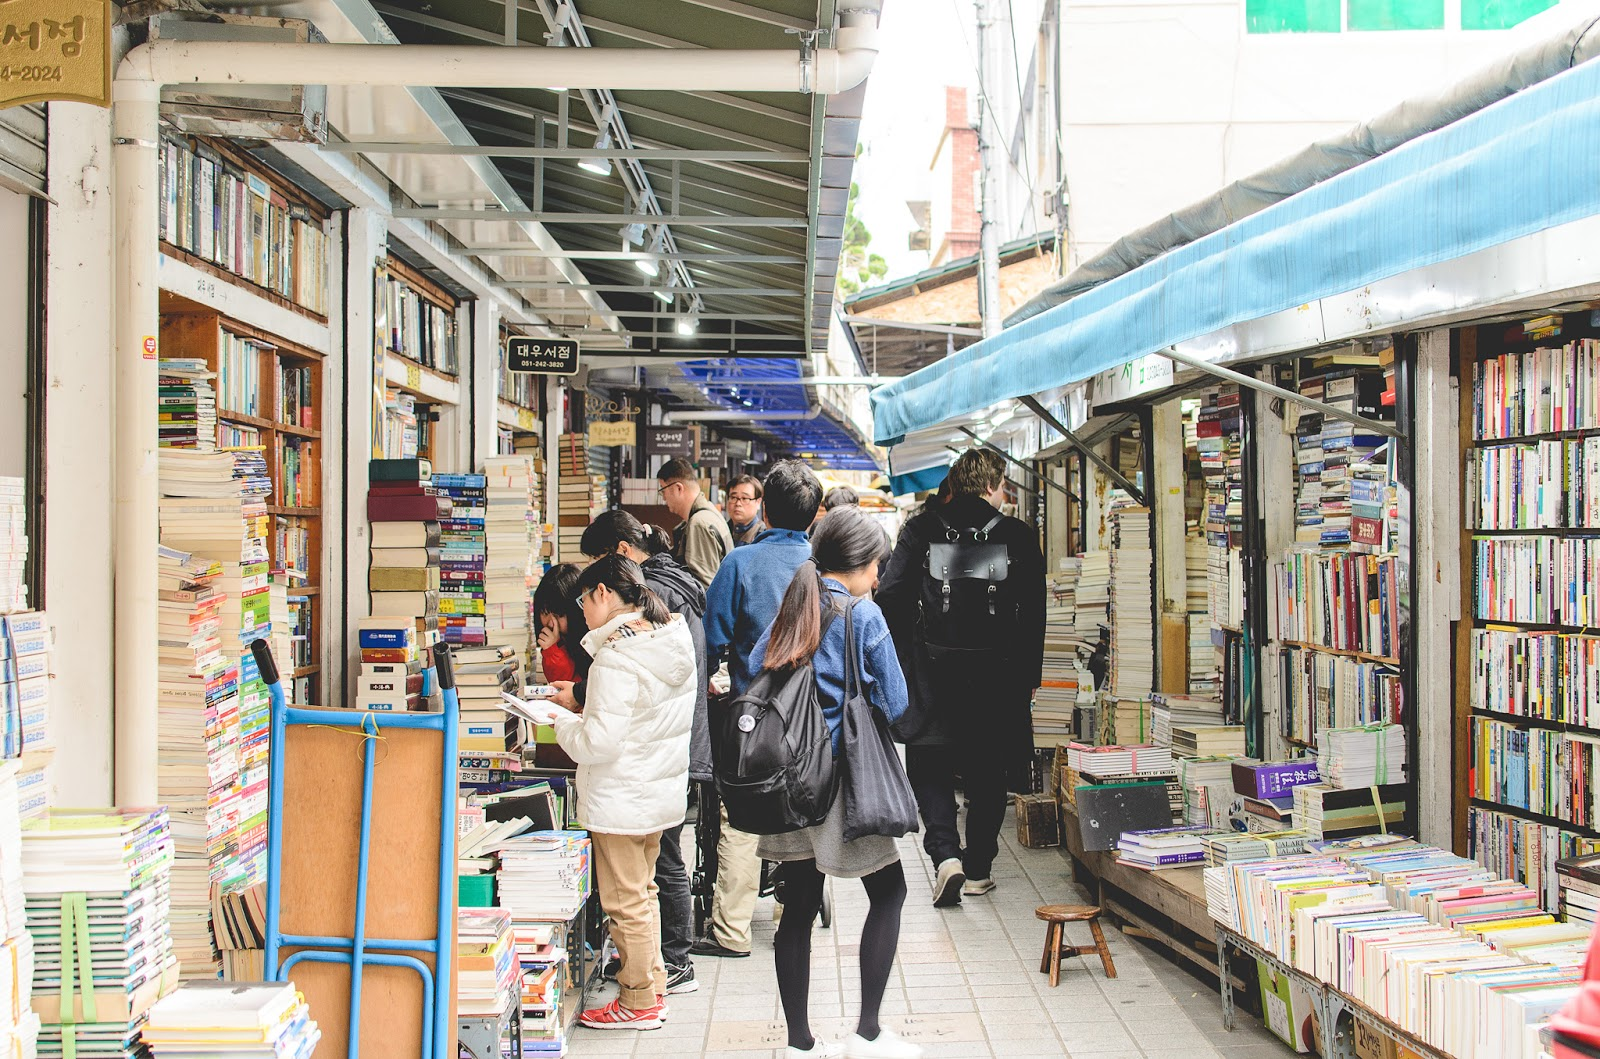 Korean Book Street Busan